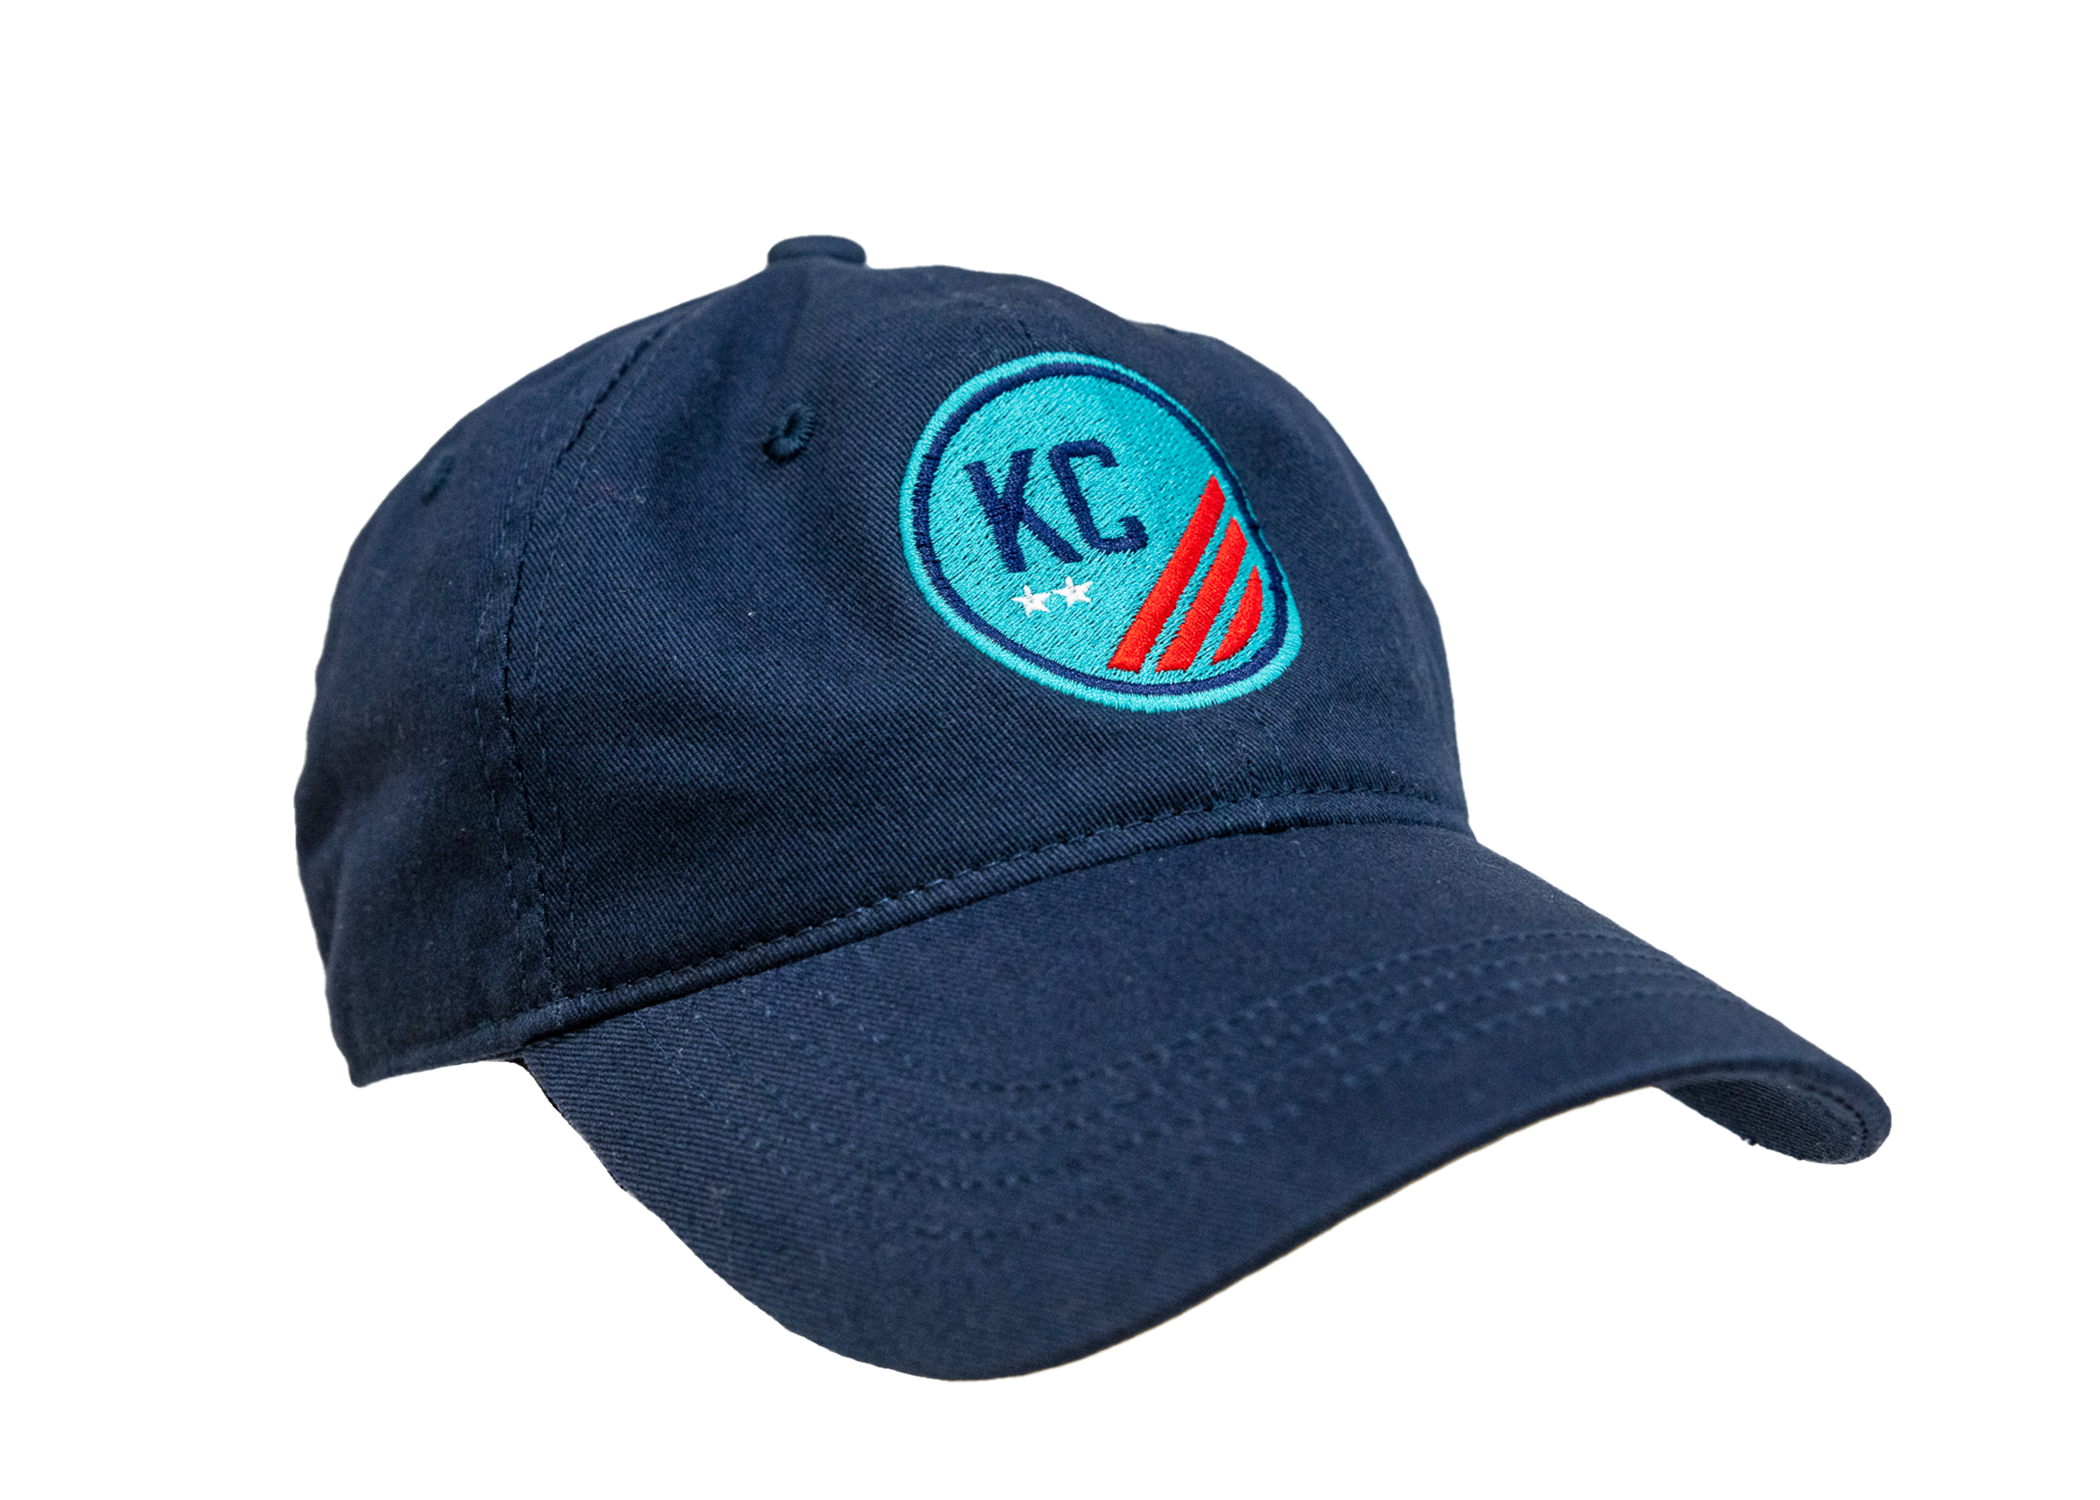 Baseball Cap with Crest